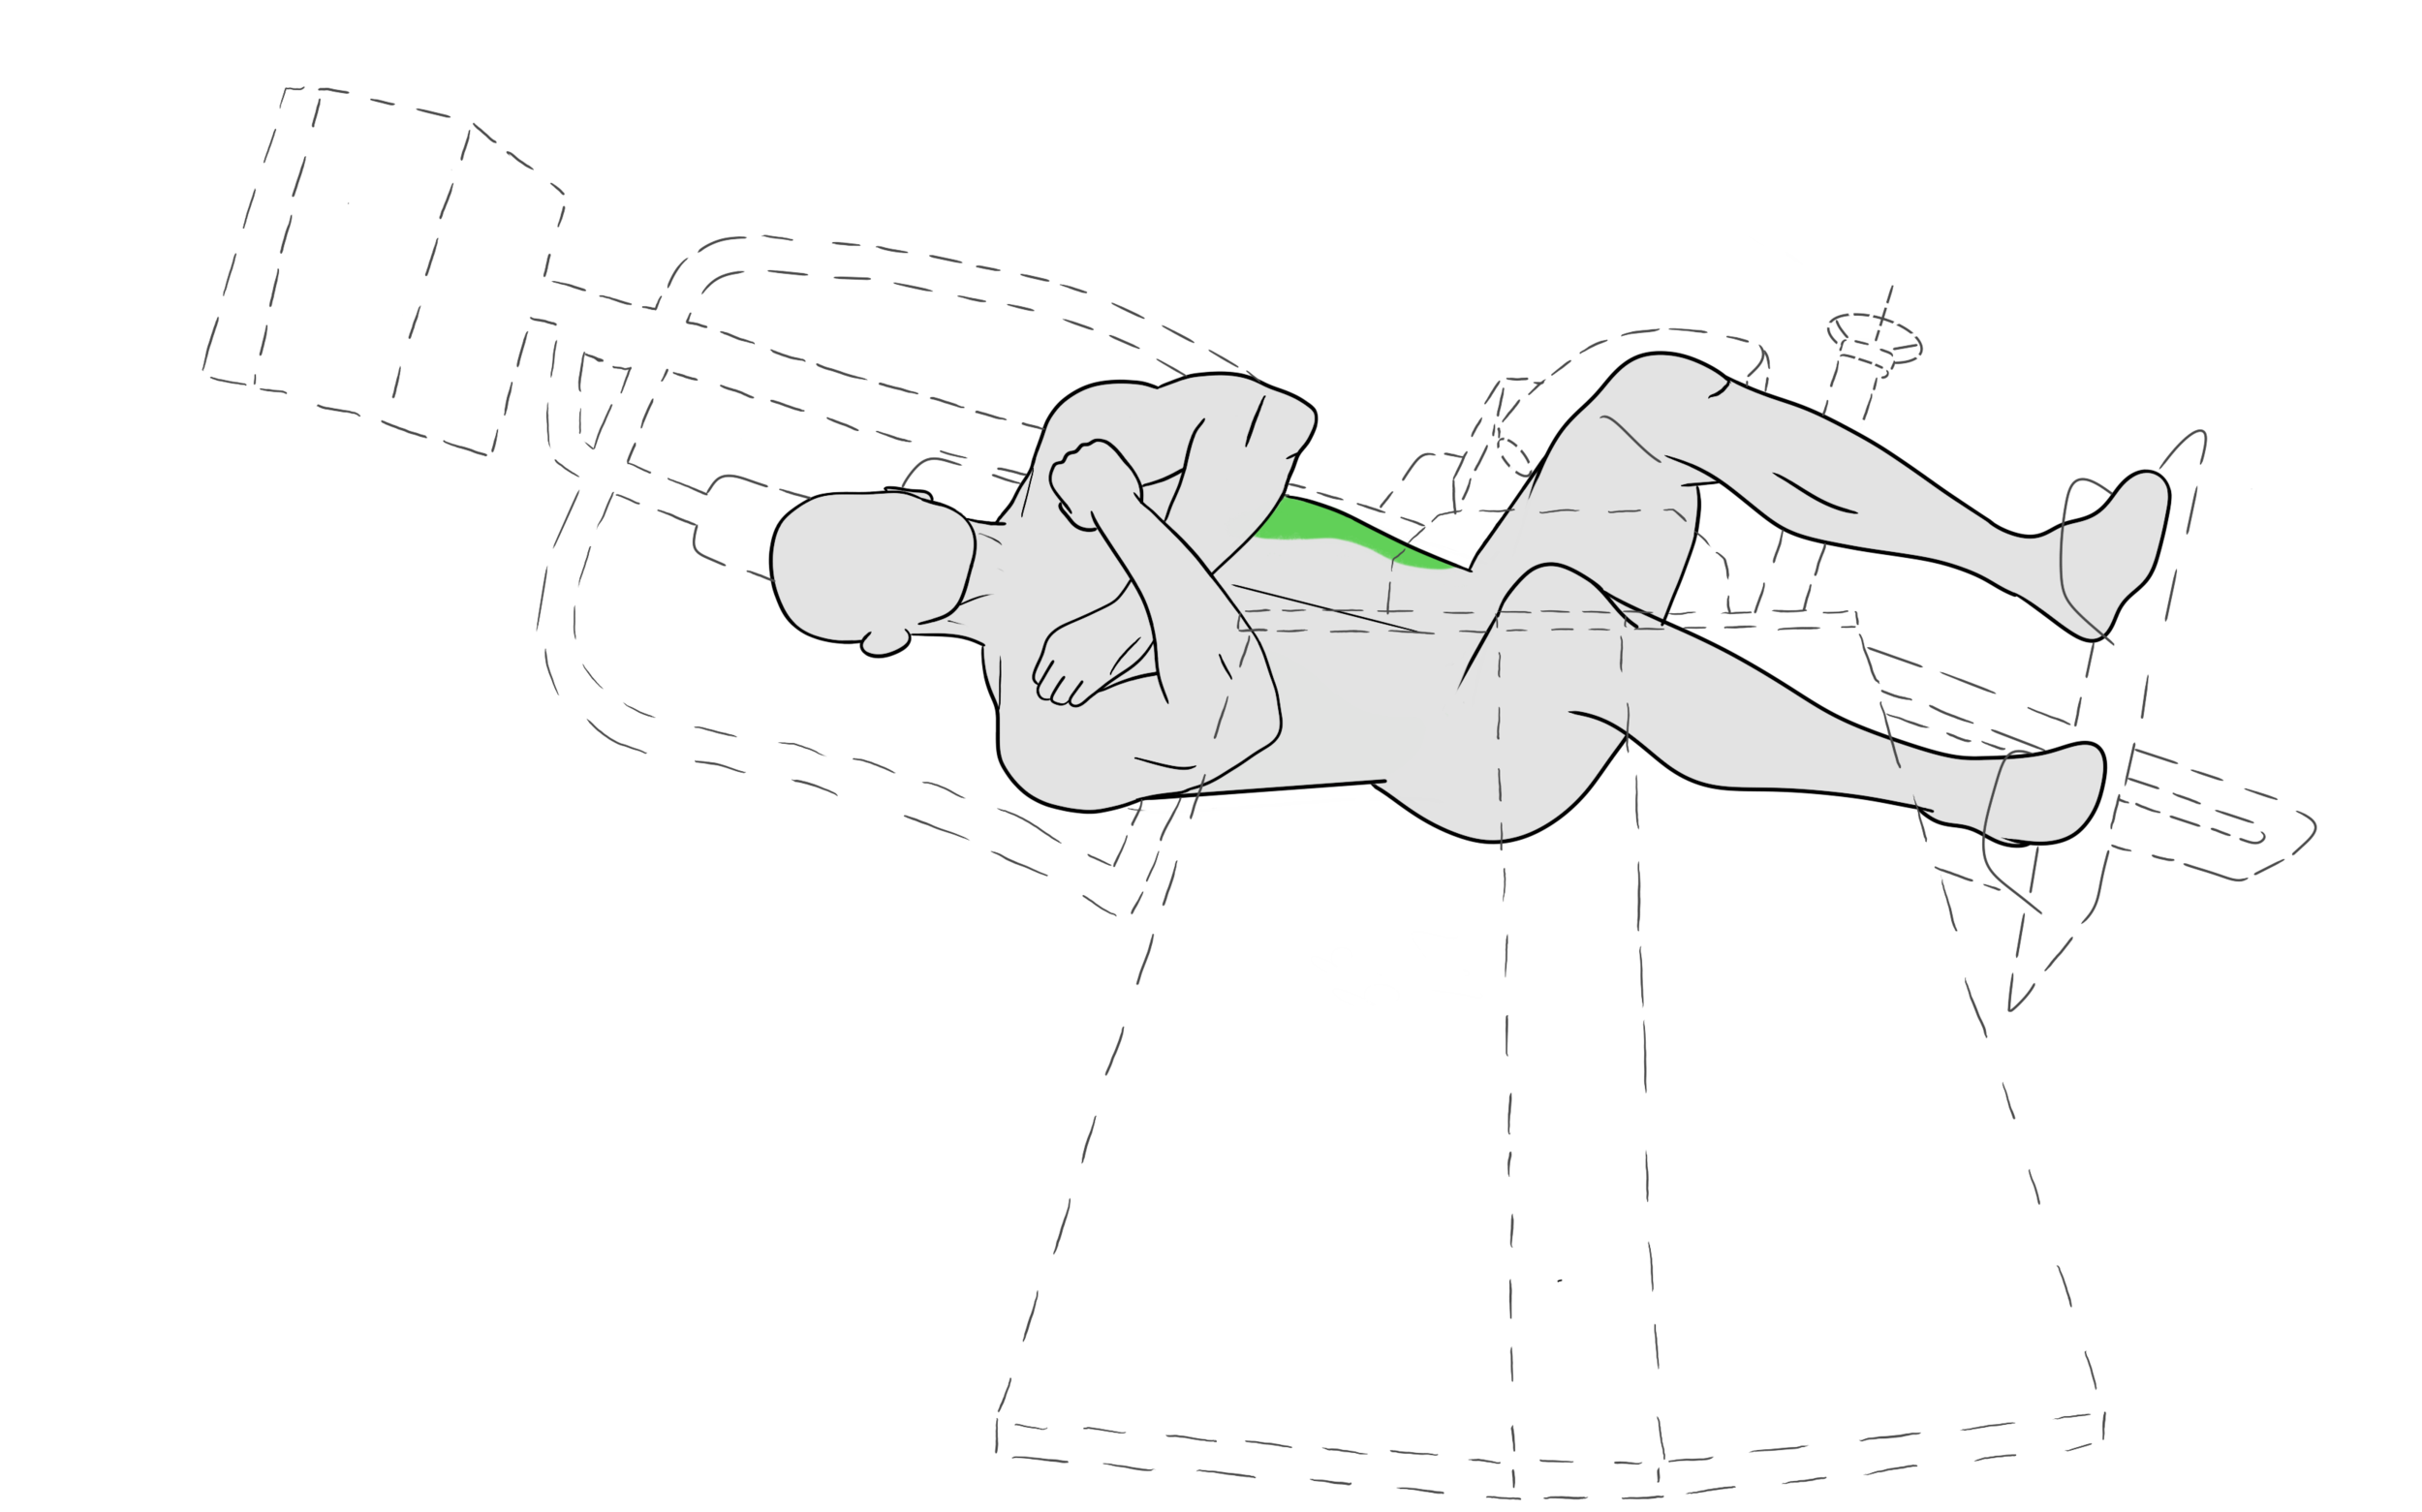 Activate and strengthen your core stability by developing your obliques and finishing out a balanced workout.